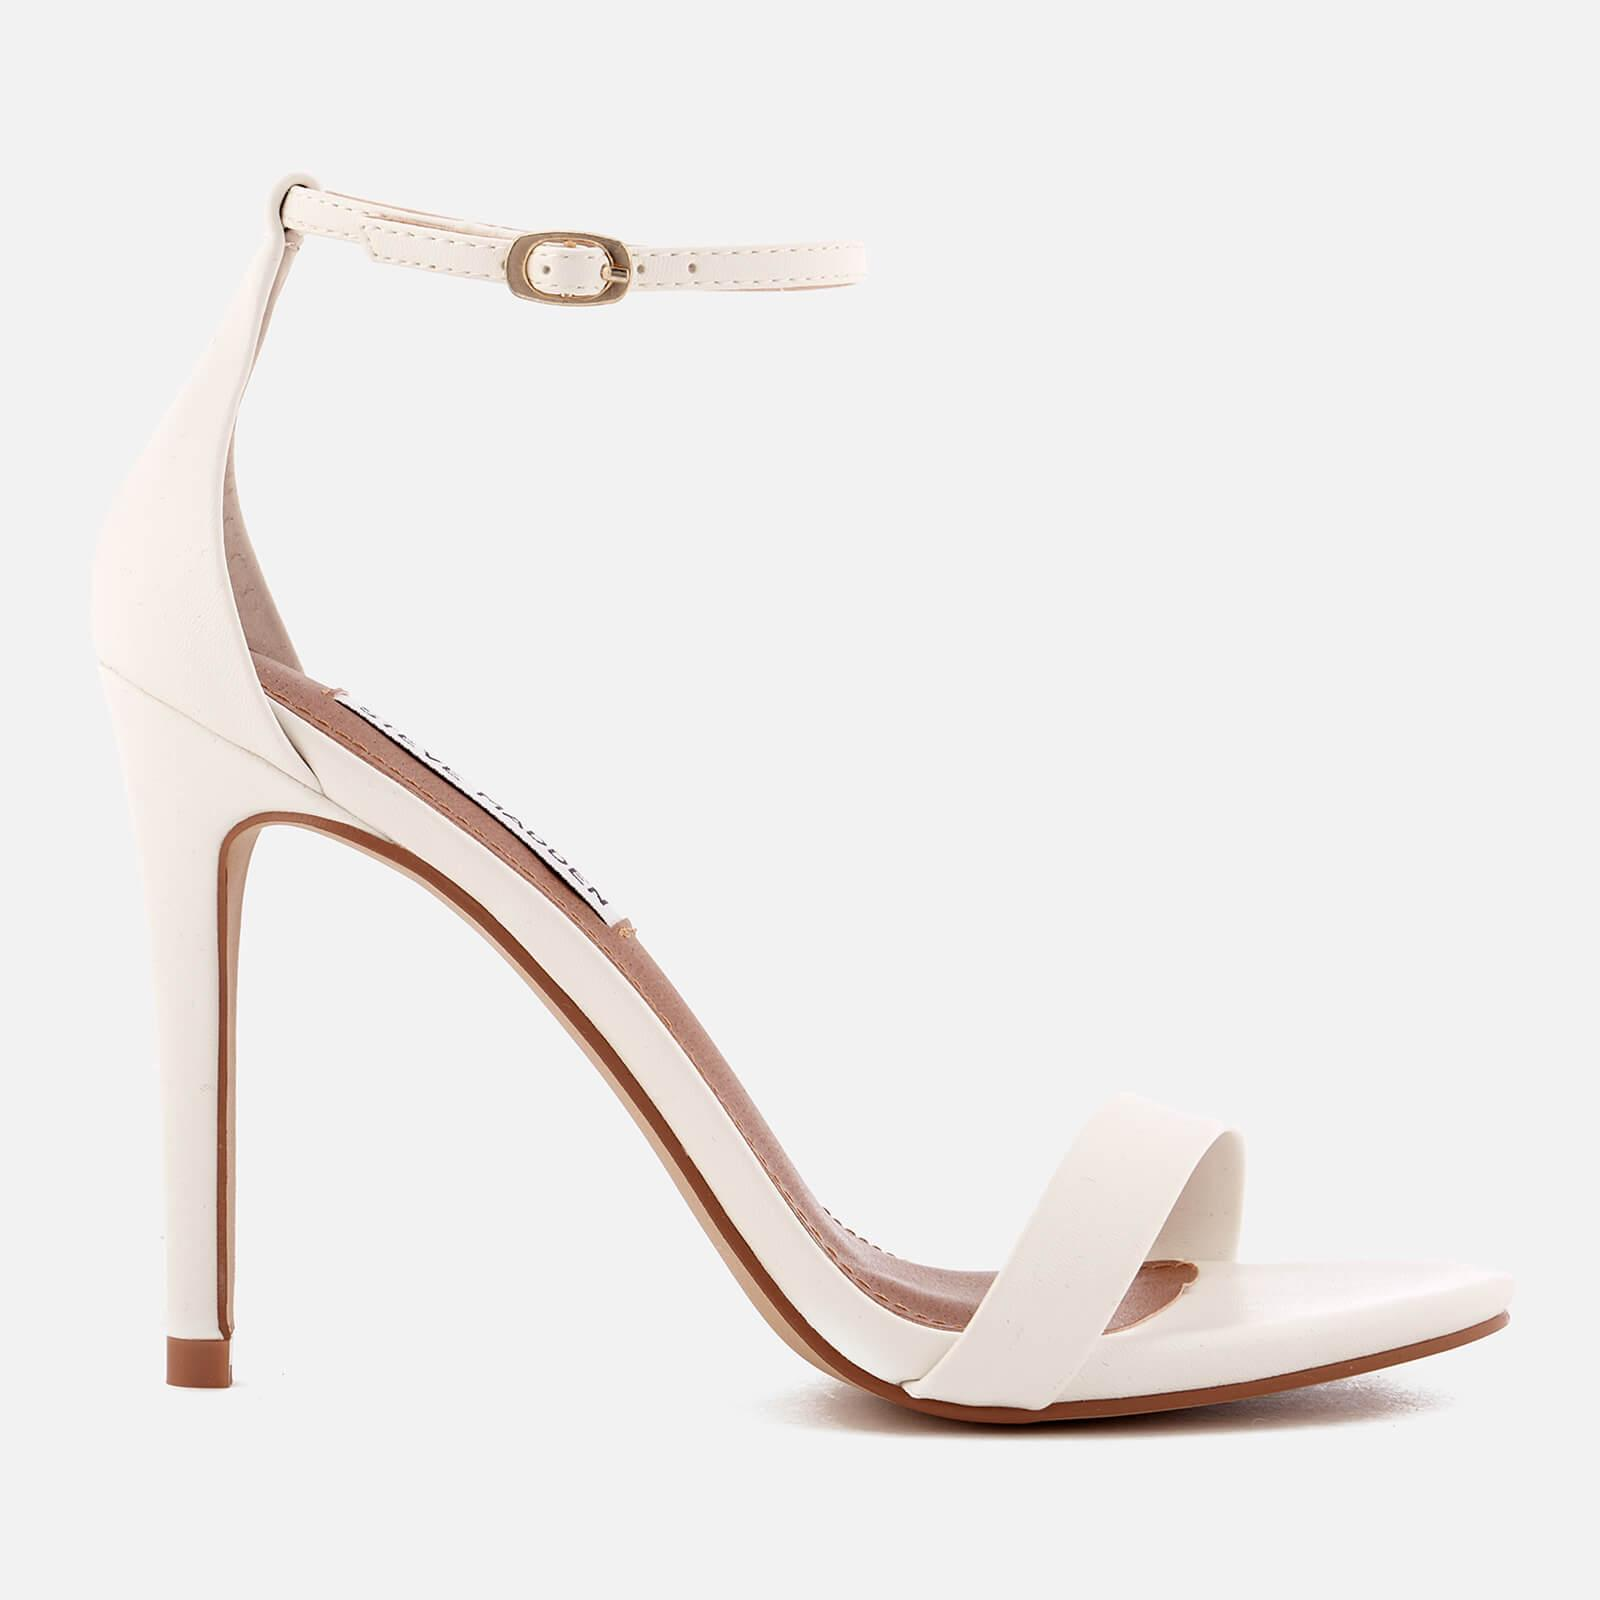 bcf25fa0a61 Lyst - Steve Madden Stecy Barely There Heeled Sandals in White